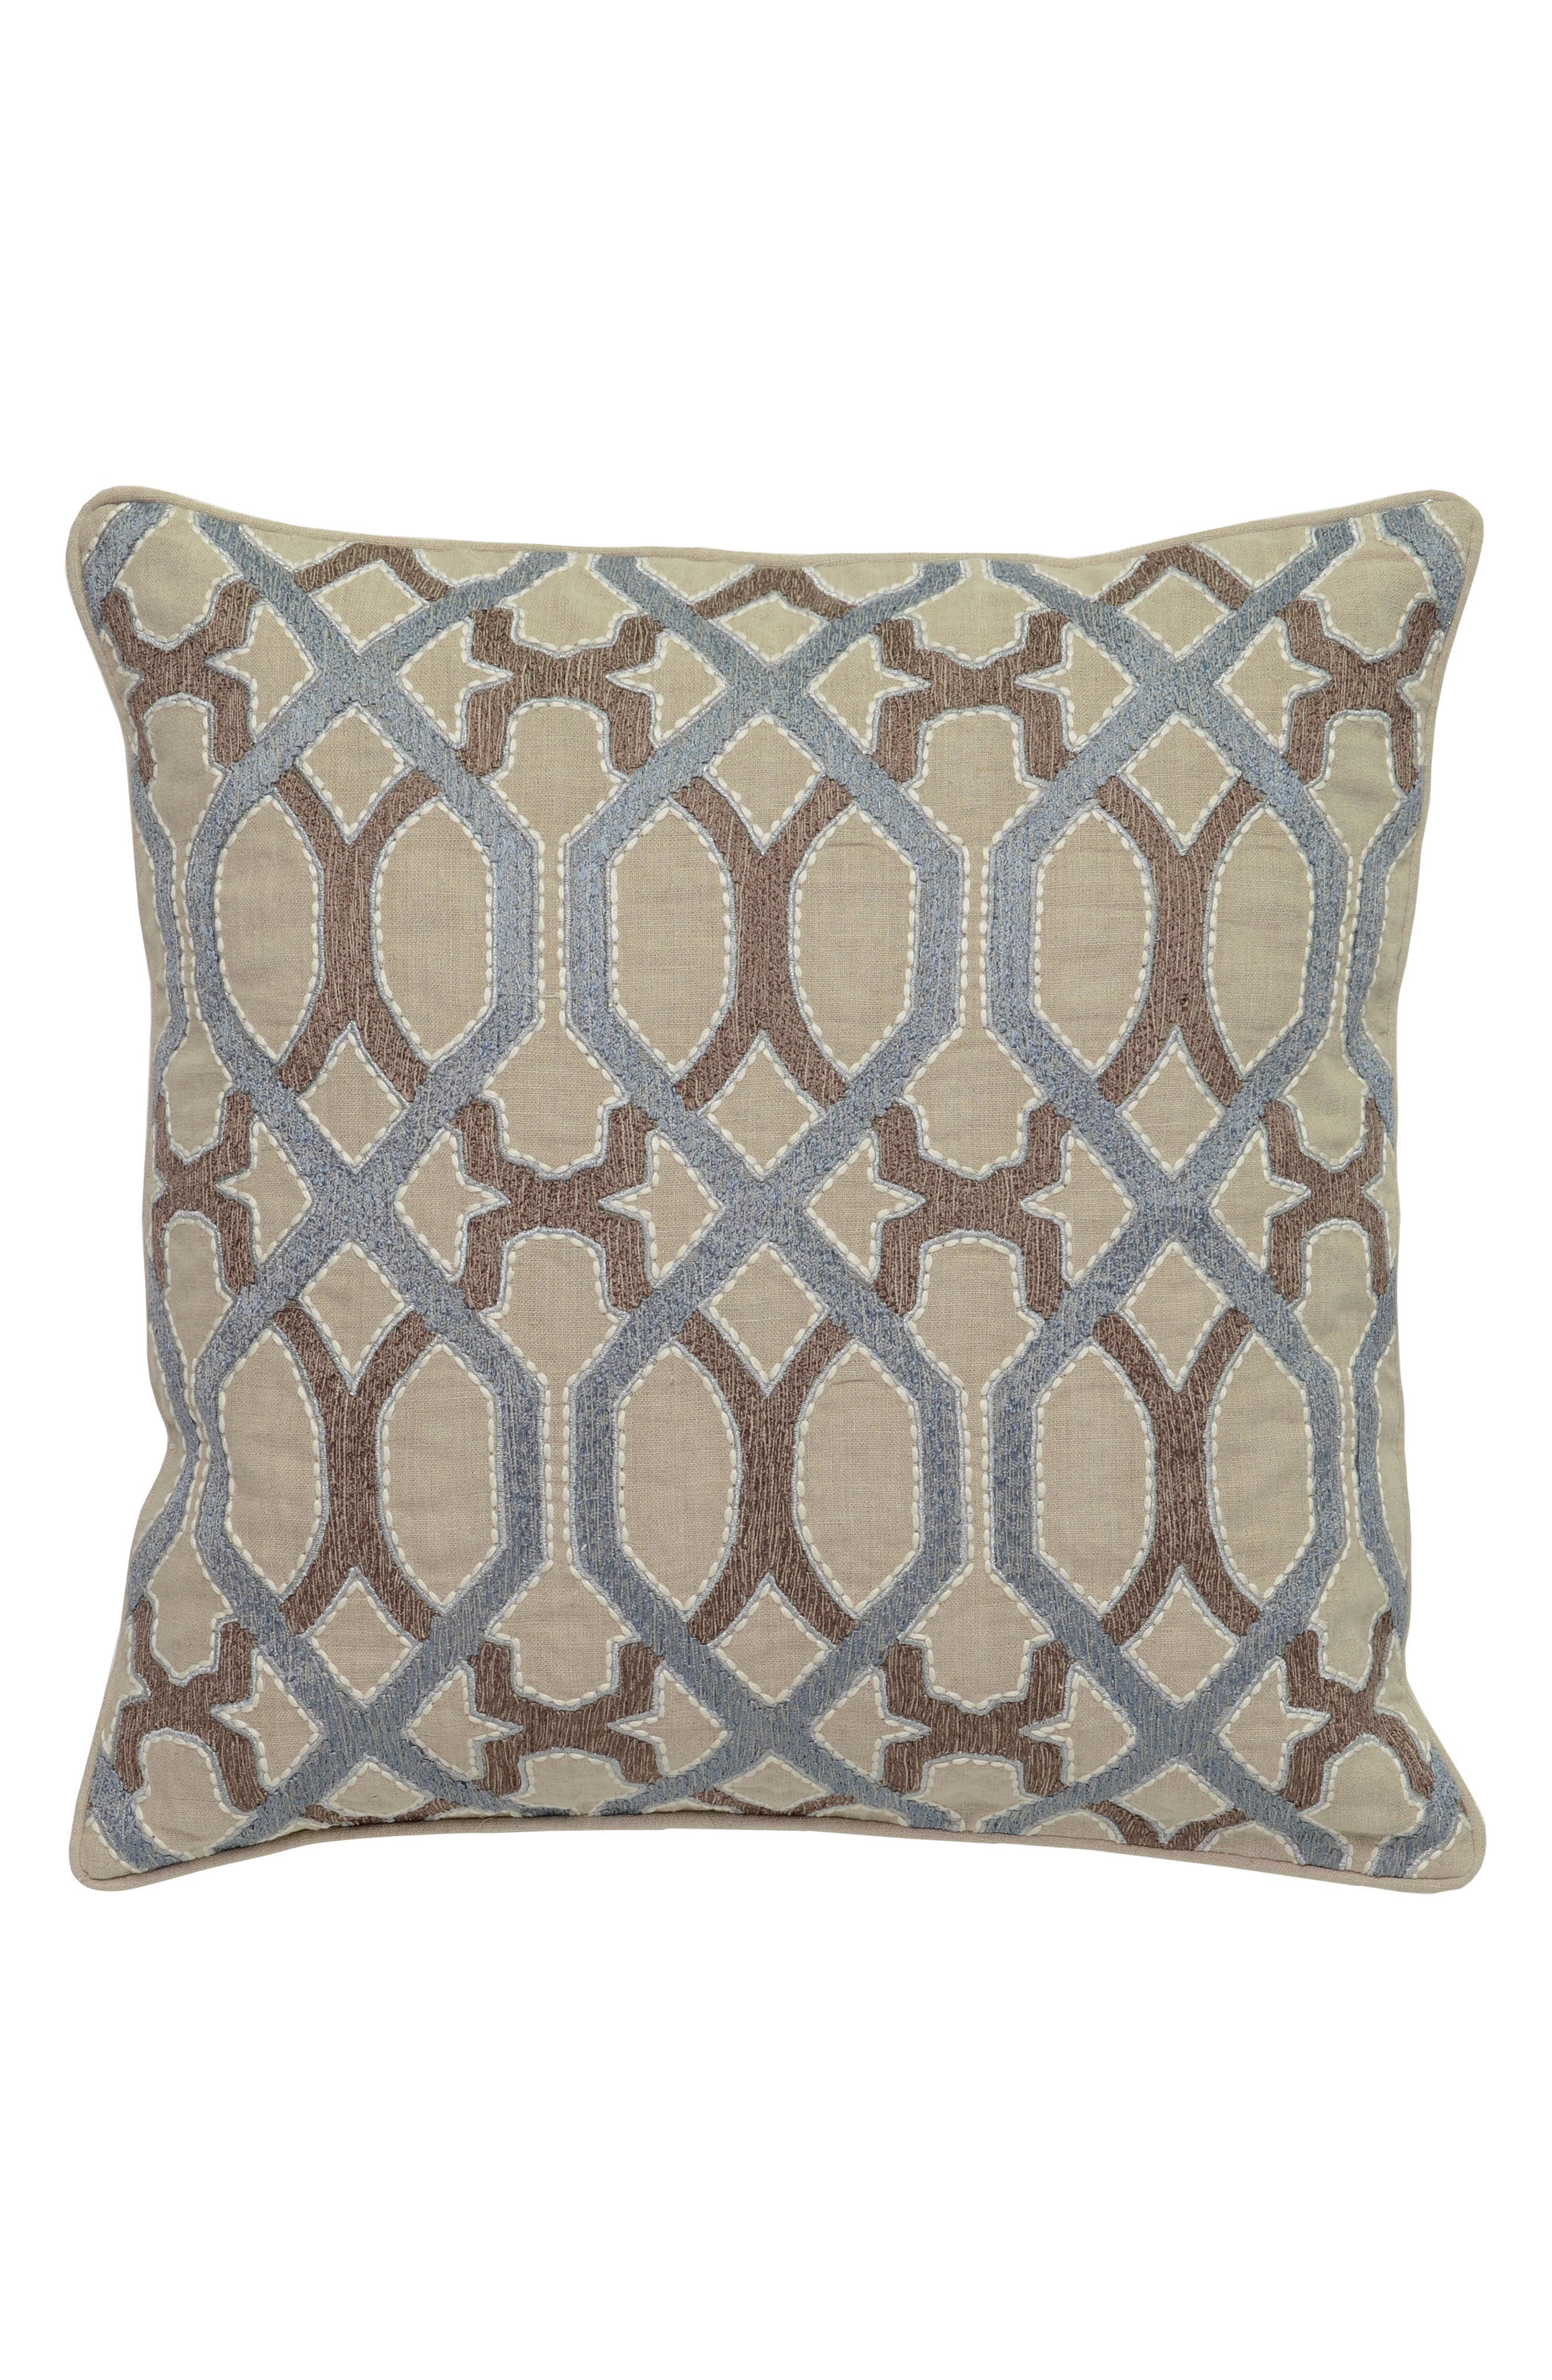 Pearle Accent Pillow,                         Main,                         color, BLUE/ IVORY